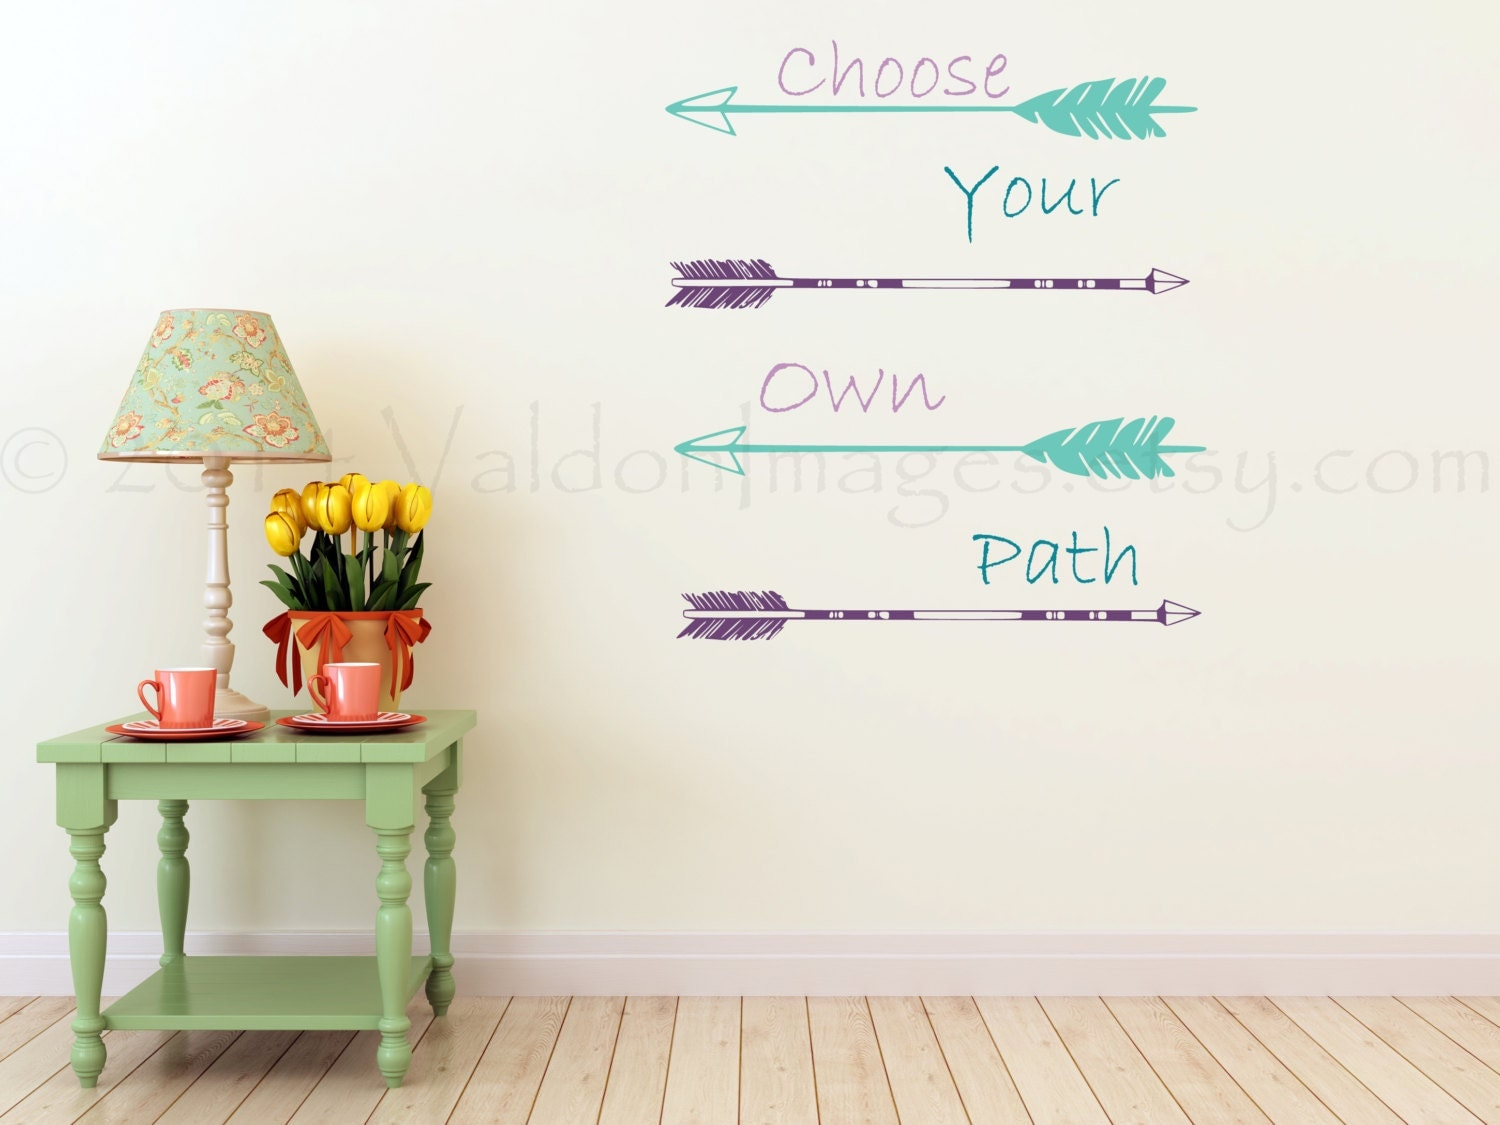 Arrow Wall Decal Choose Your Own Path Wall Decal By